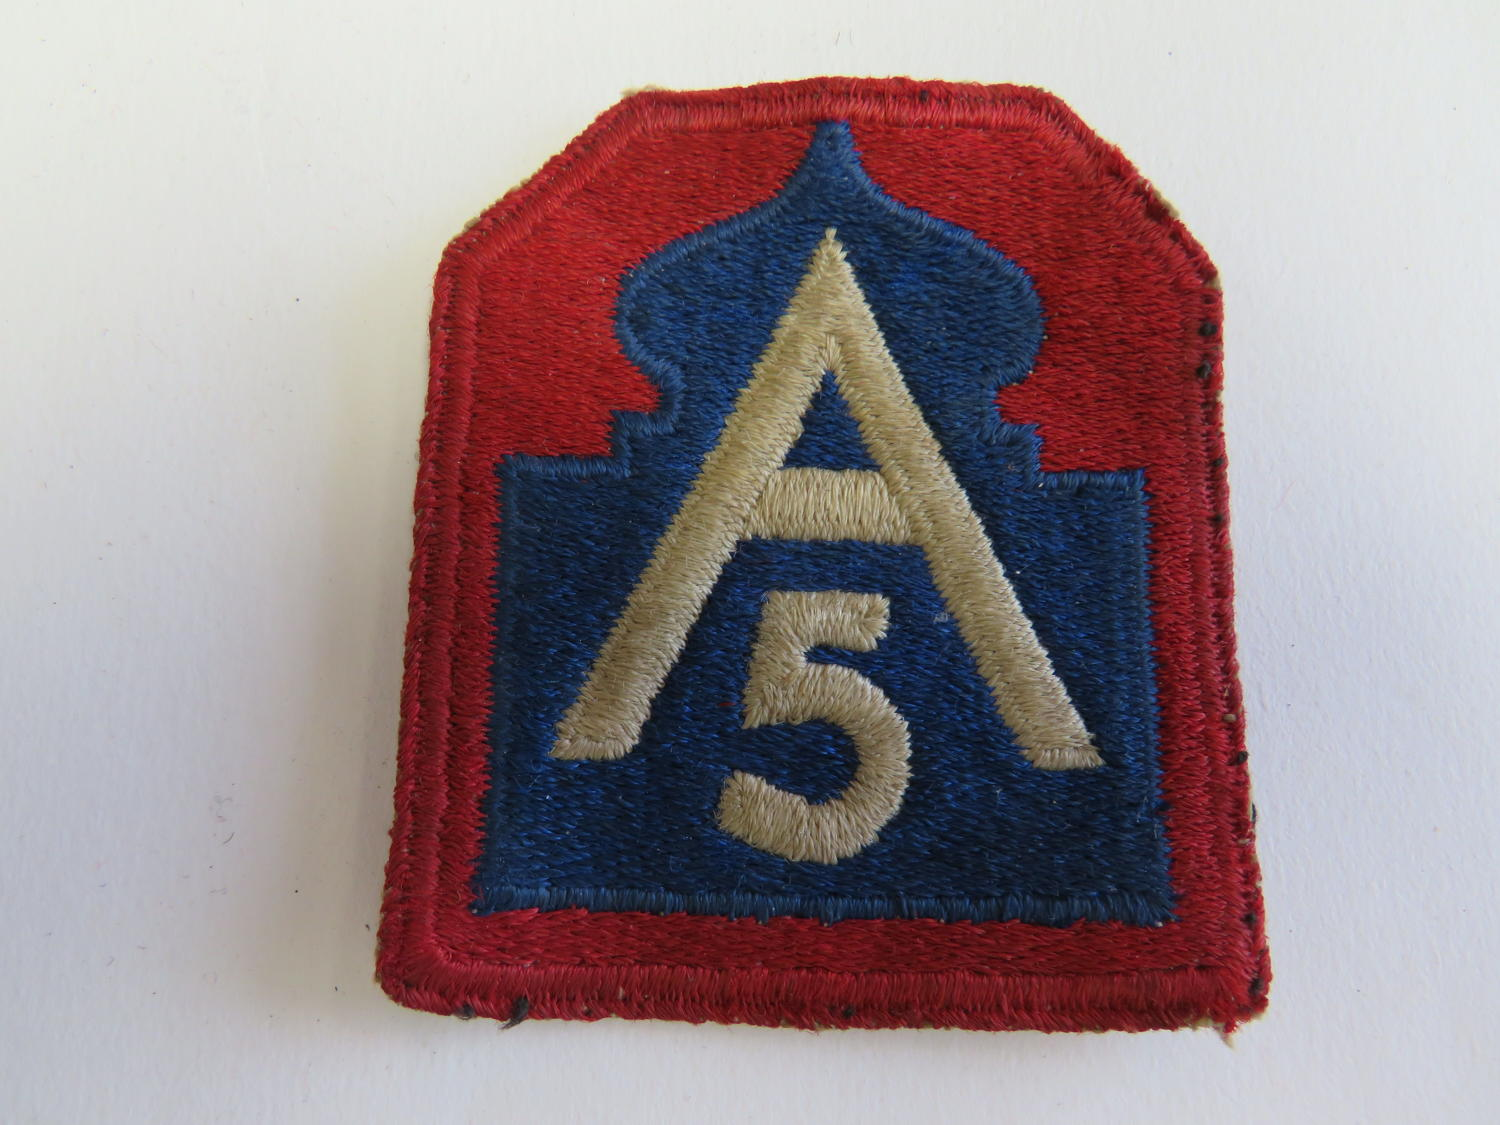 WW2 American 5th Army Formation Badge